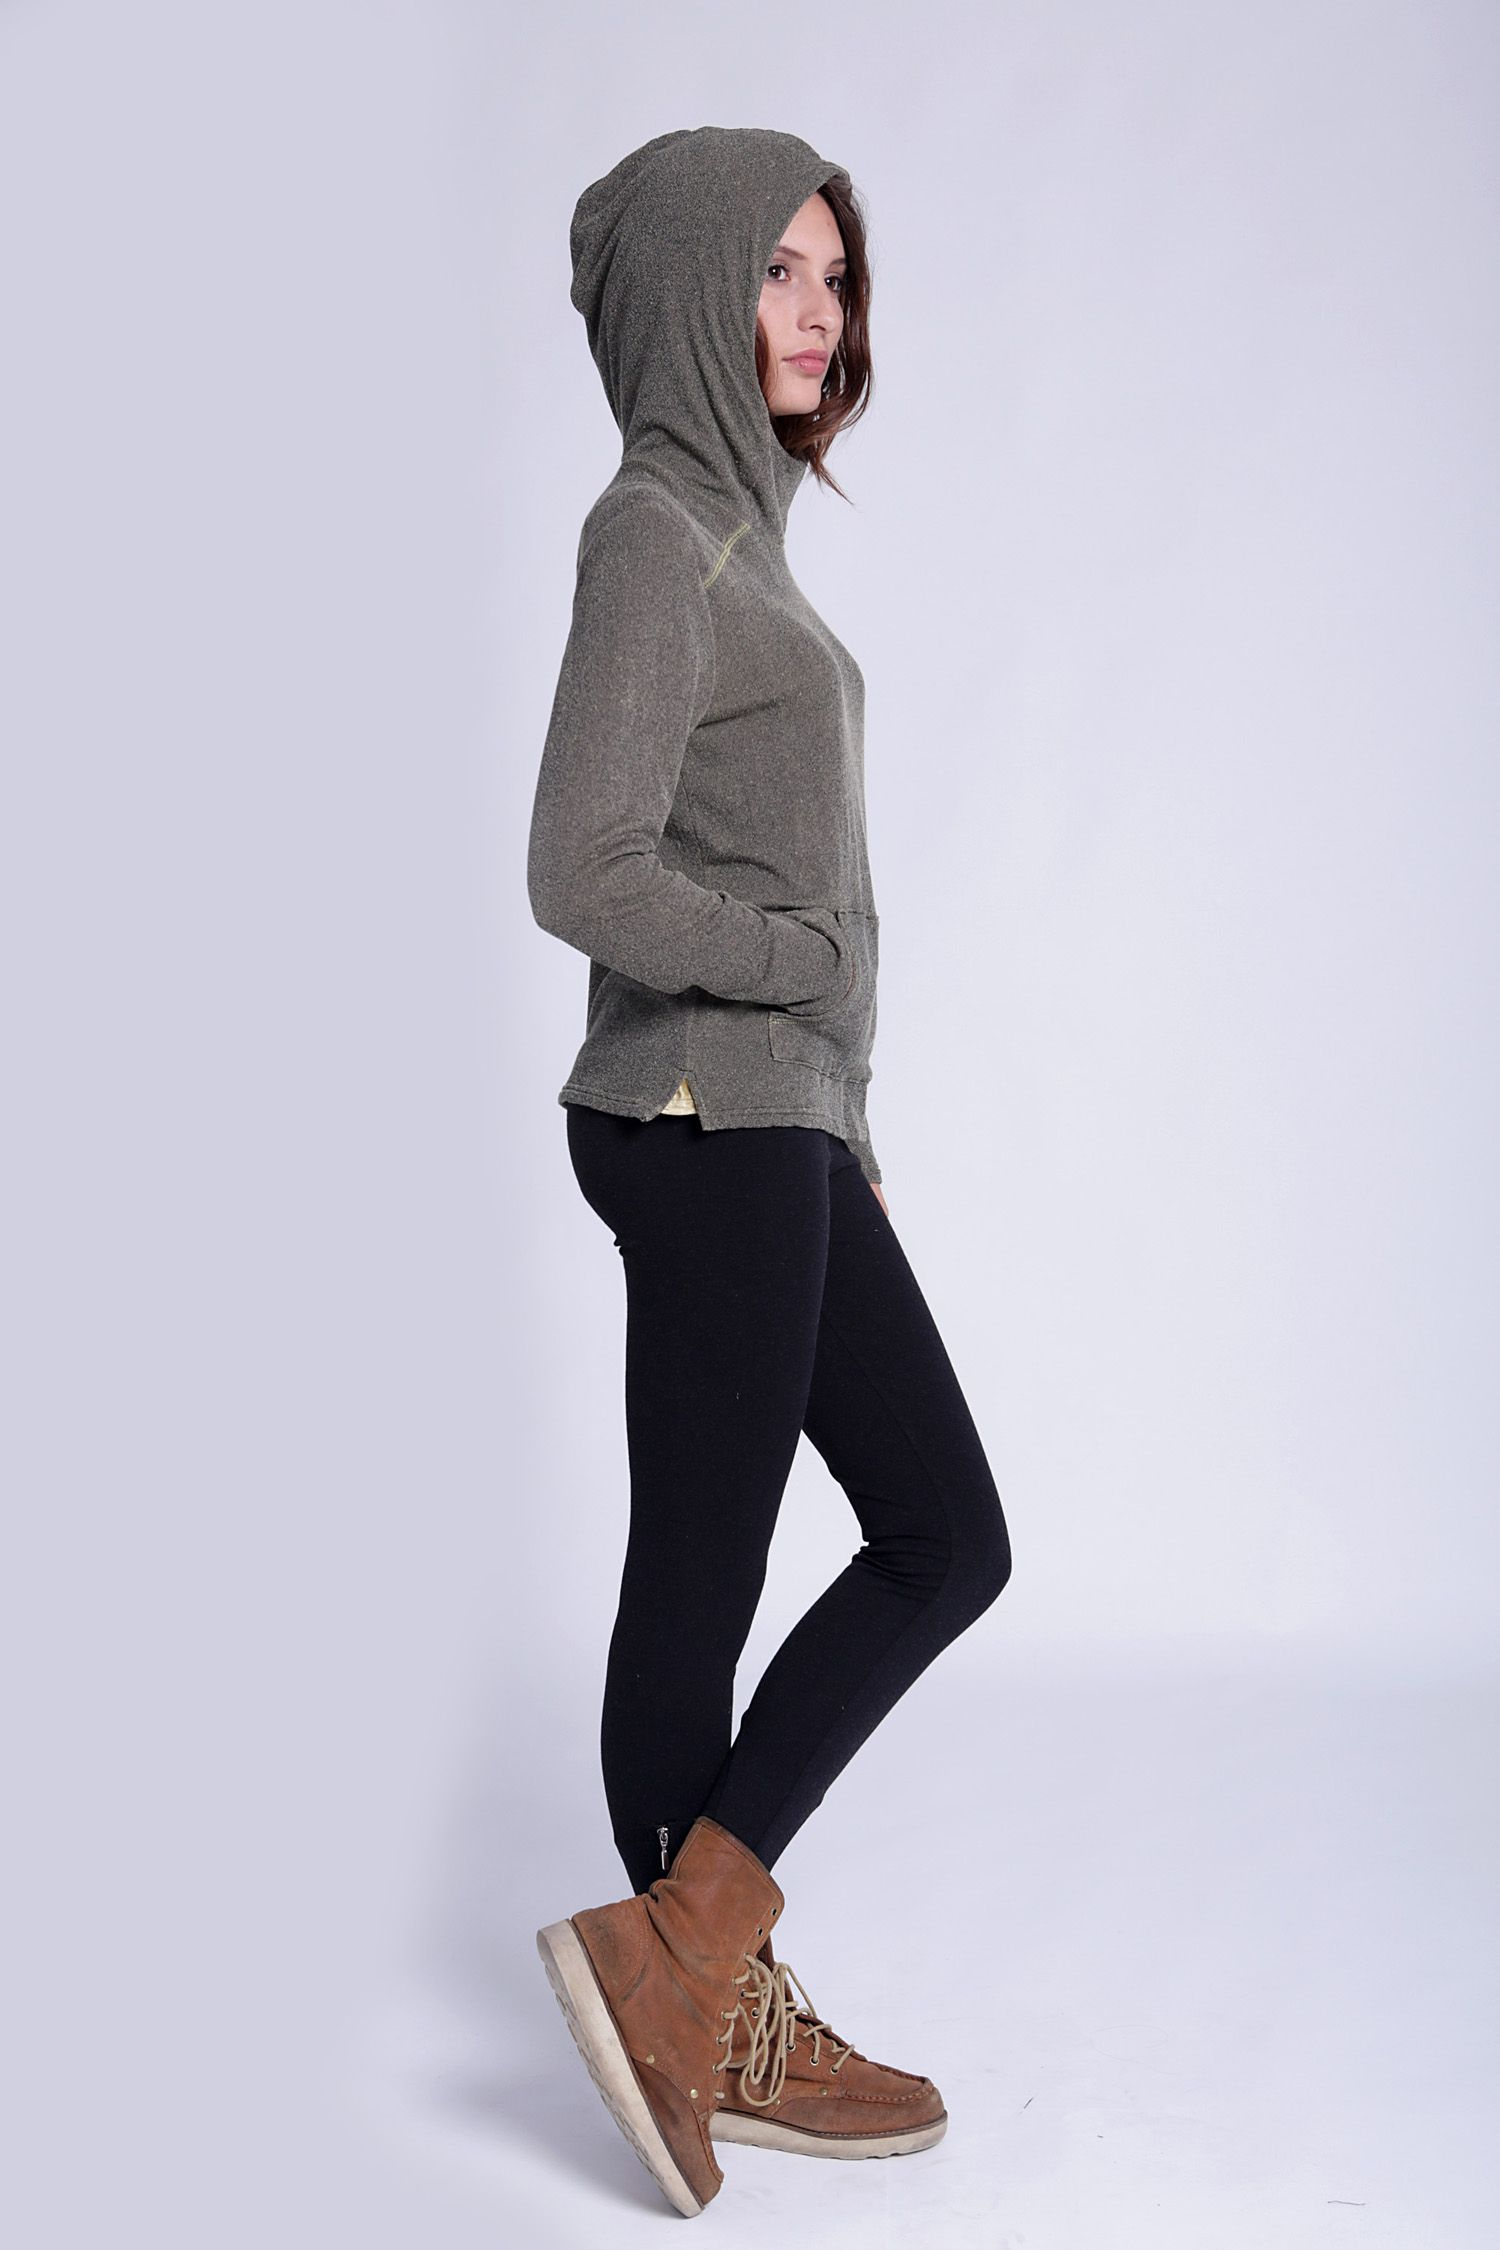 Velour hoodie u0026 black leggings | Leggings outfits | Pinterest